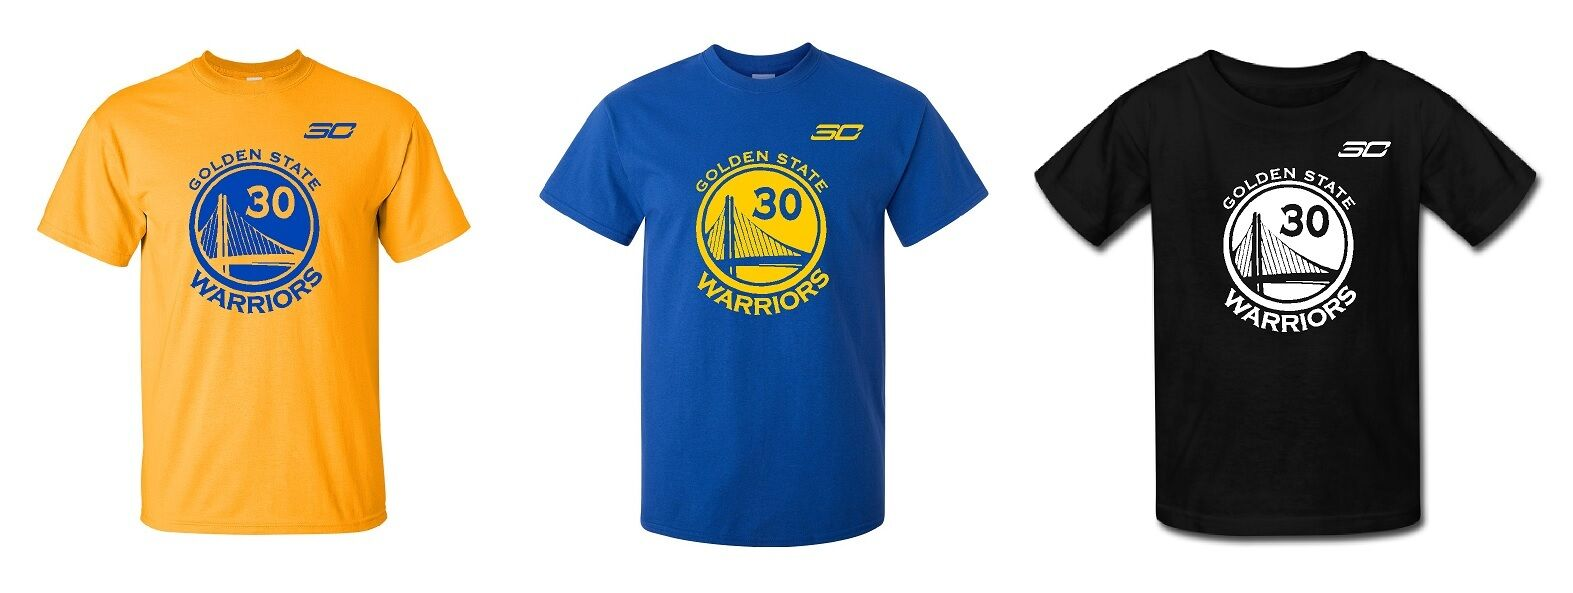 Stephen Curry Golden State Warriors T-Shirt Jersey #30